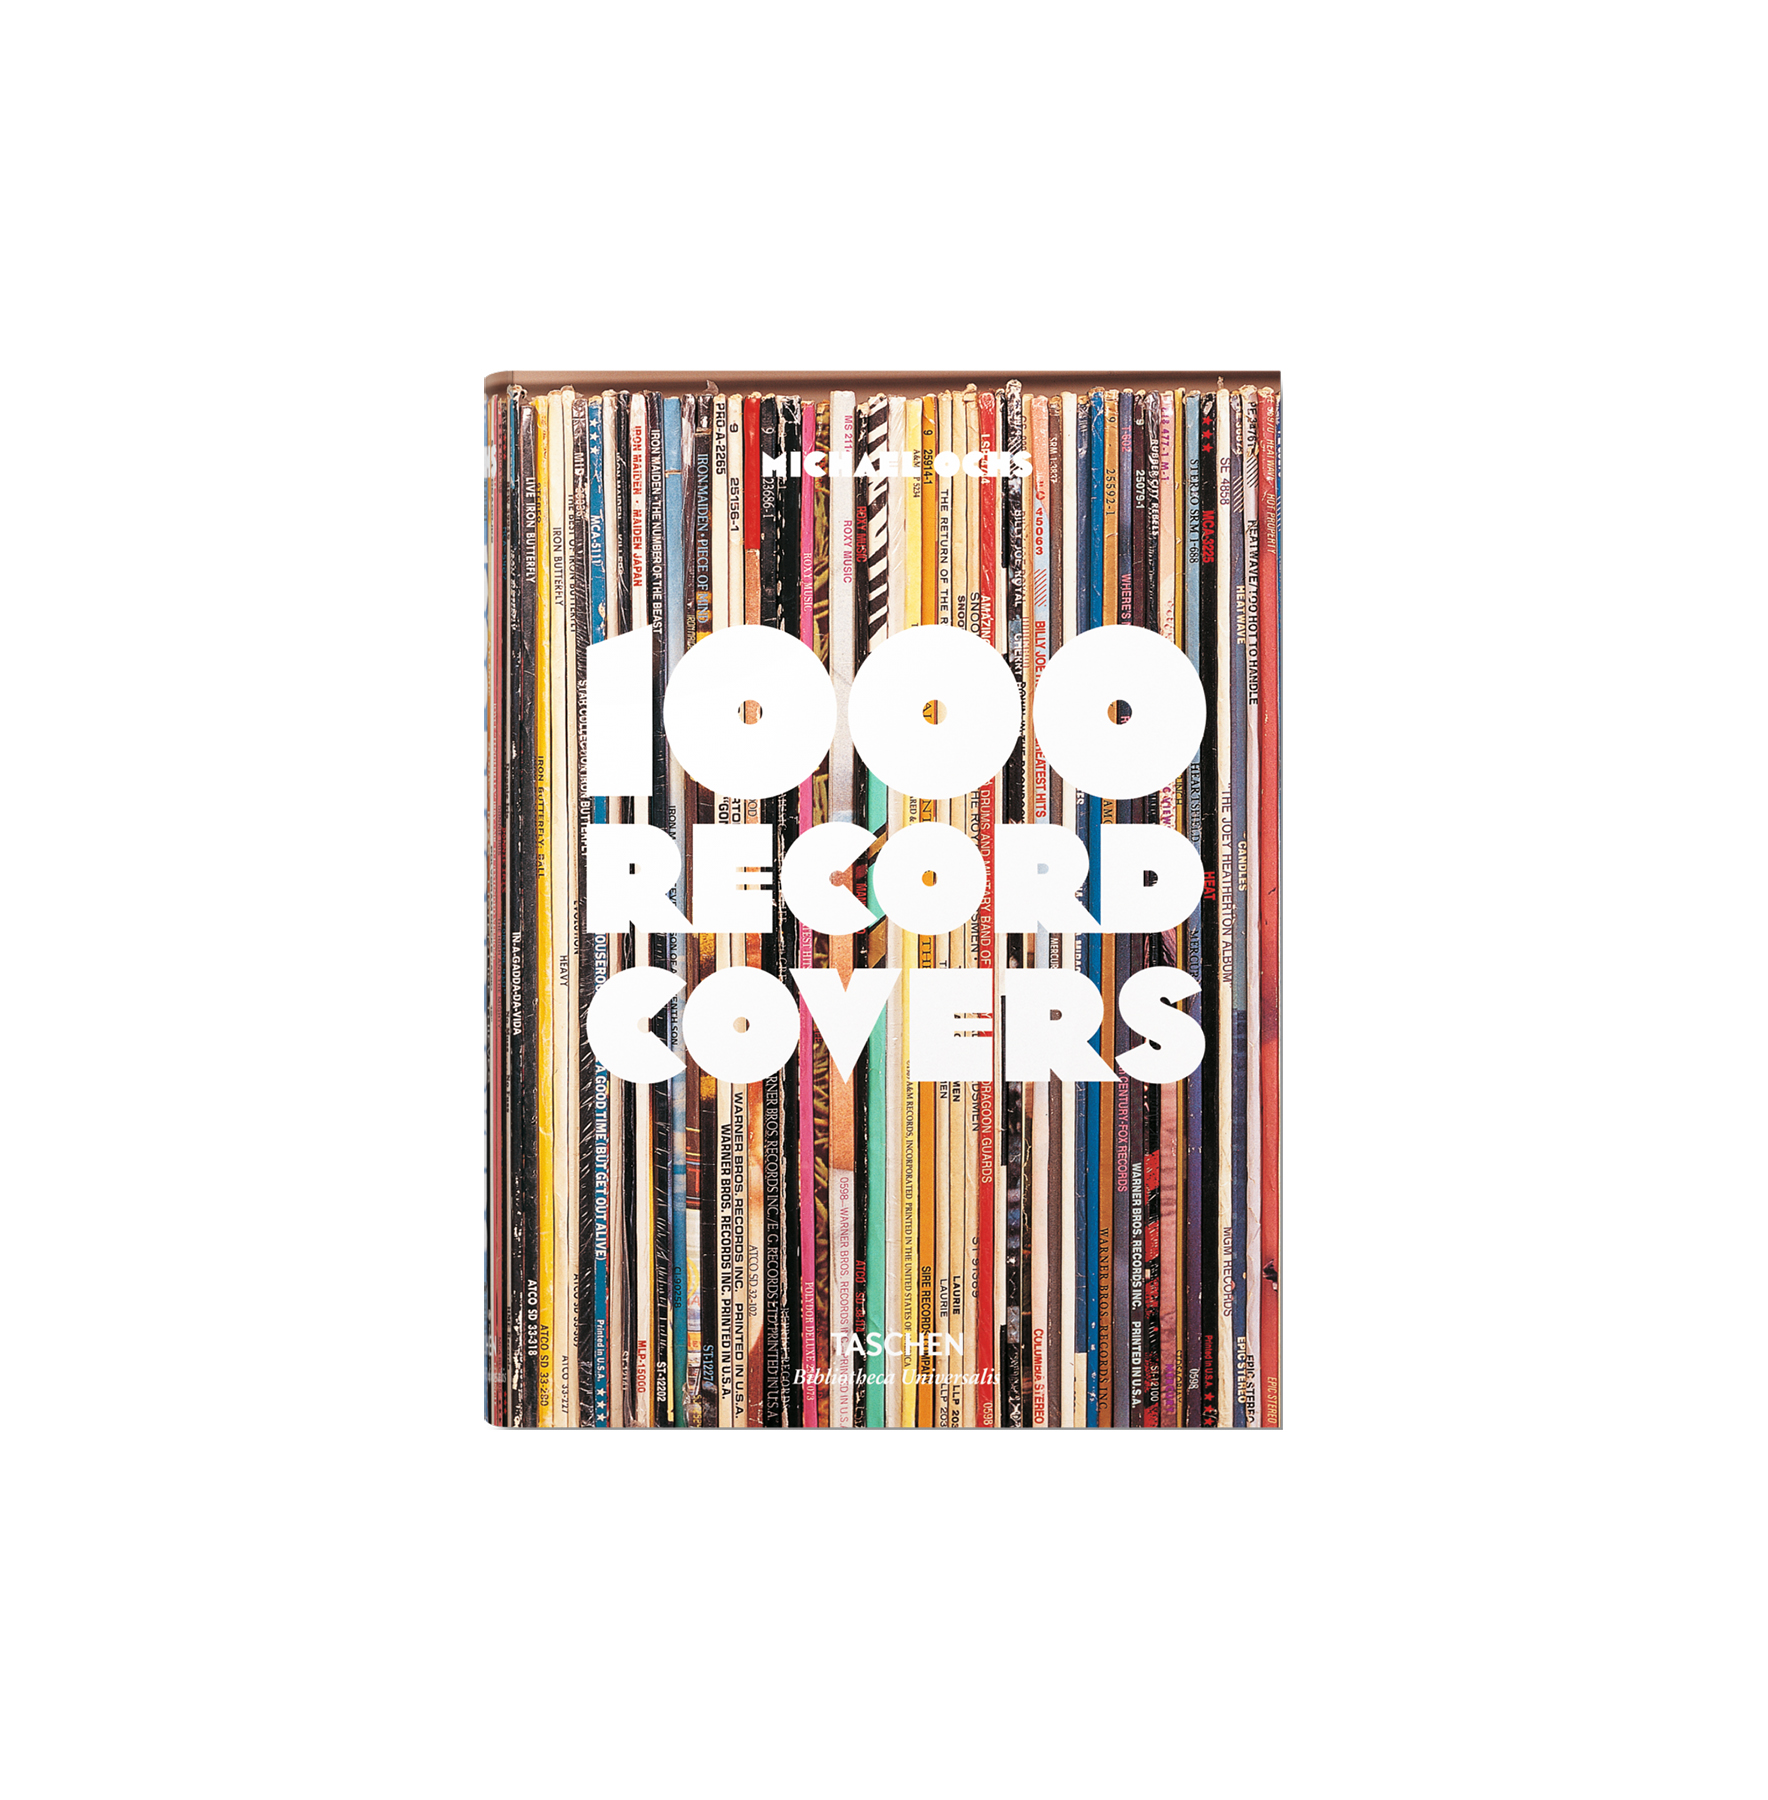 1000-record-covers-ochs